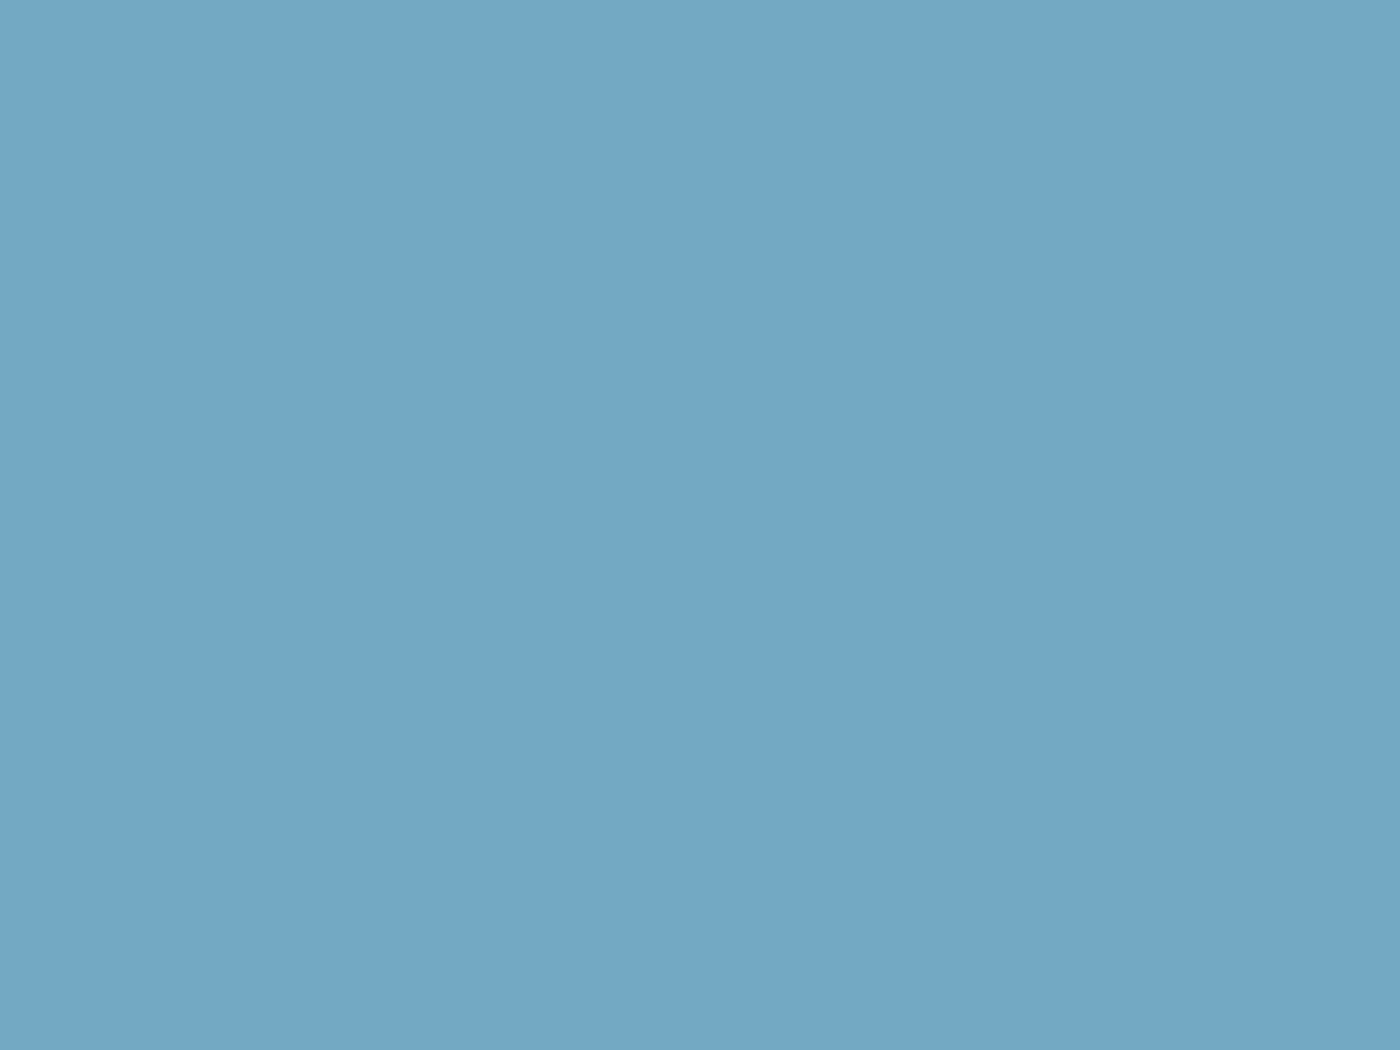 1400x1050 Moonstone Blue Solid Color Background